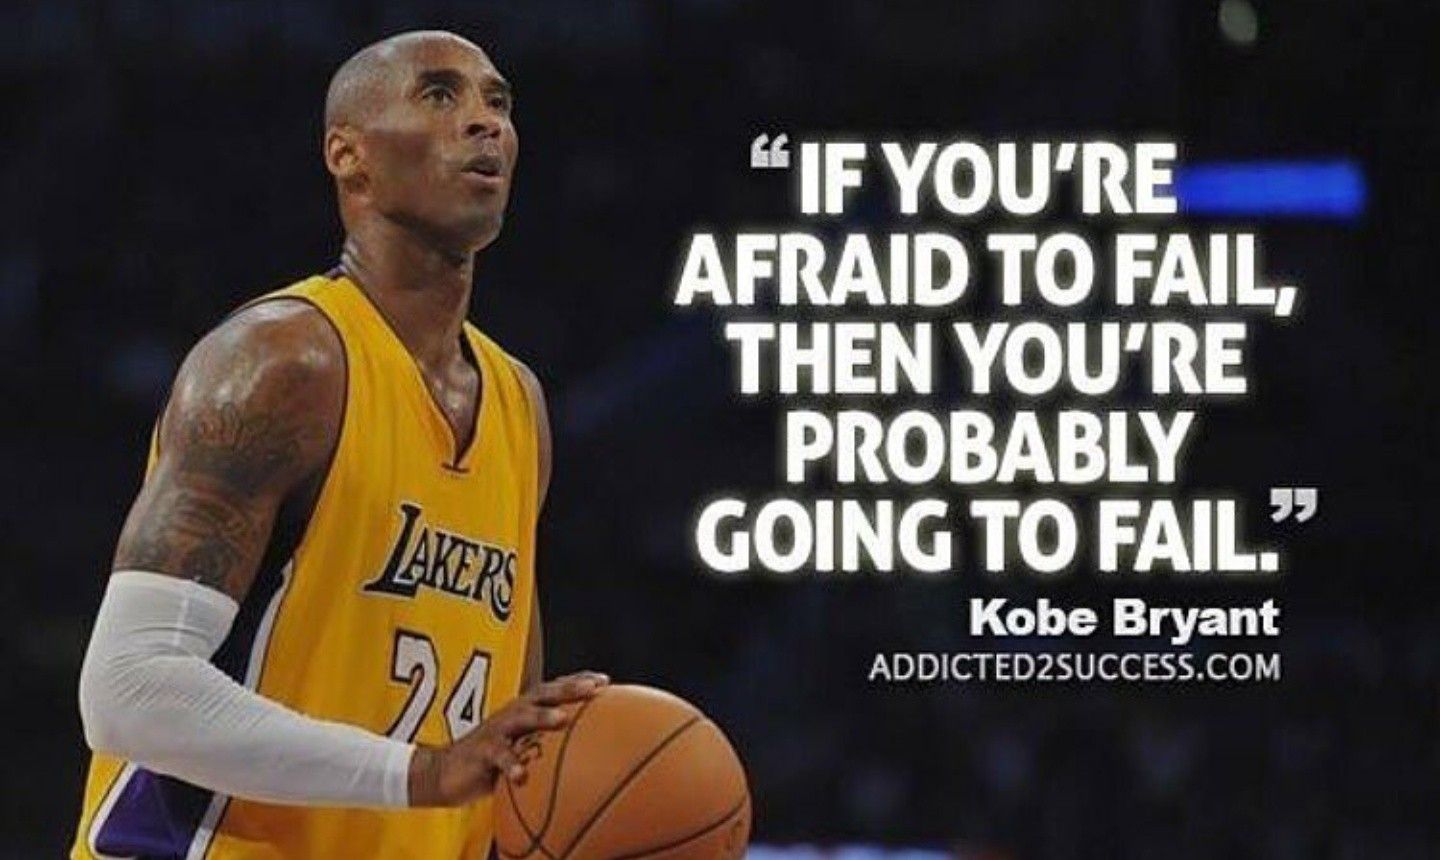 Pin By Get More Followers On Basketball In 2020 Kobe Bryant Quotes Basketball Quotes Inspirational Kobe Bryant